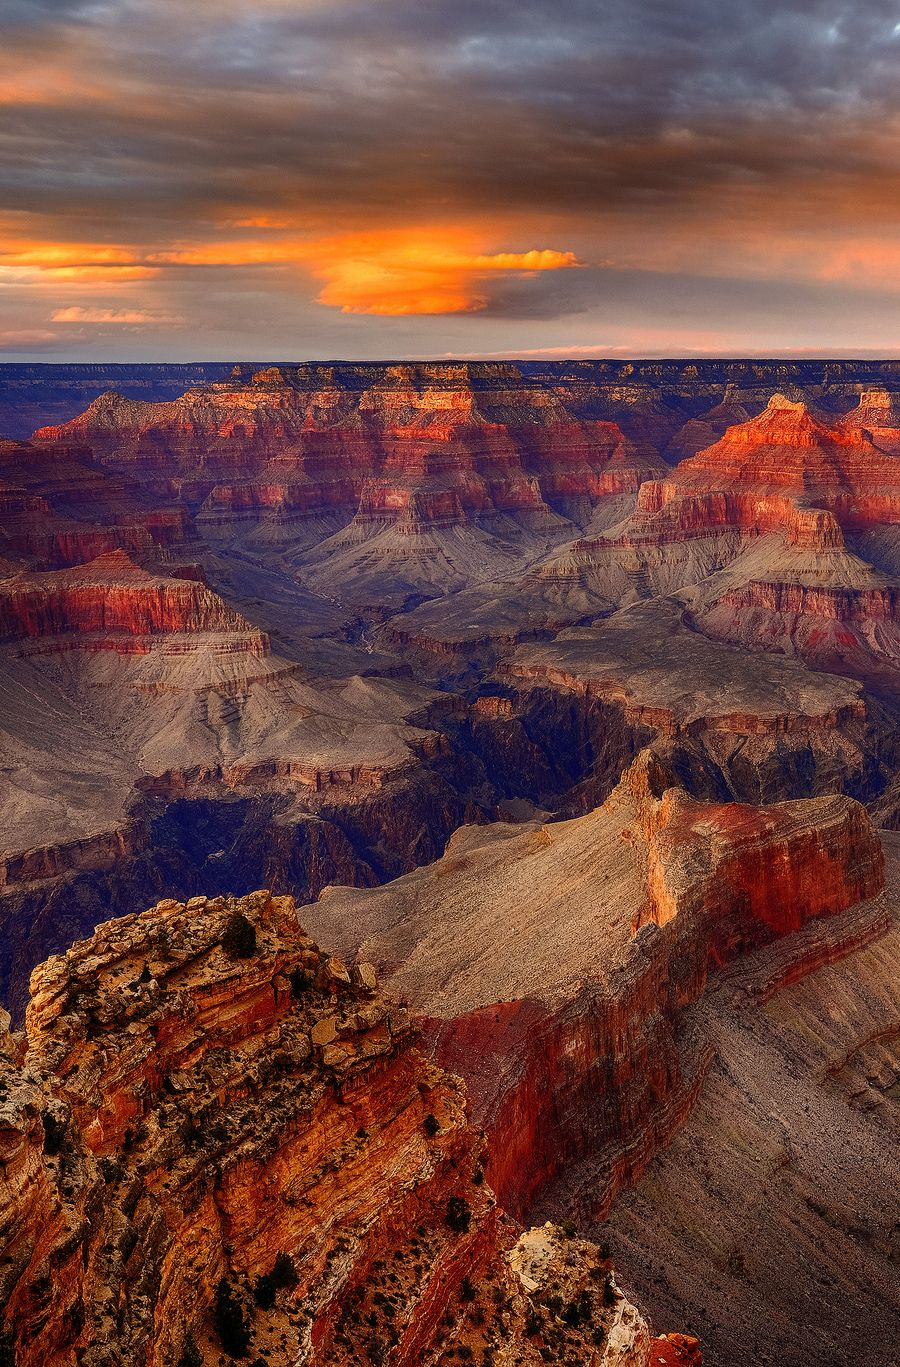 The Grand Canyon: Which Rim is the Best to Visit? - Mapping Megan